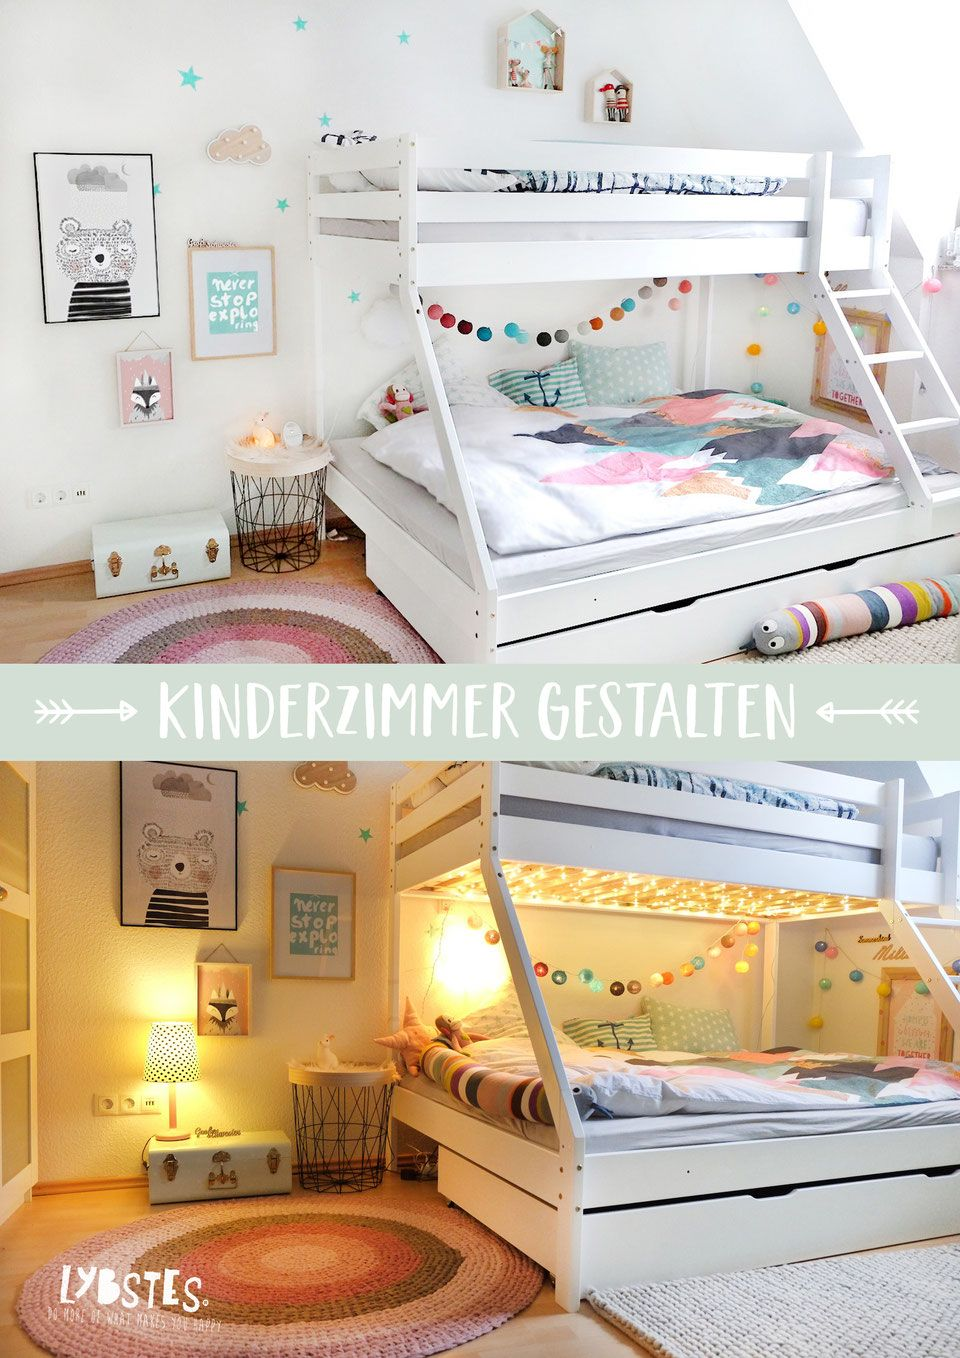 Photo of Lybstes children's room design with loft bed, cozy lighting, in pink, …